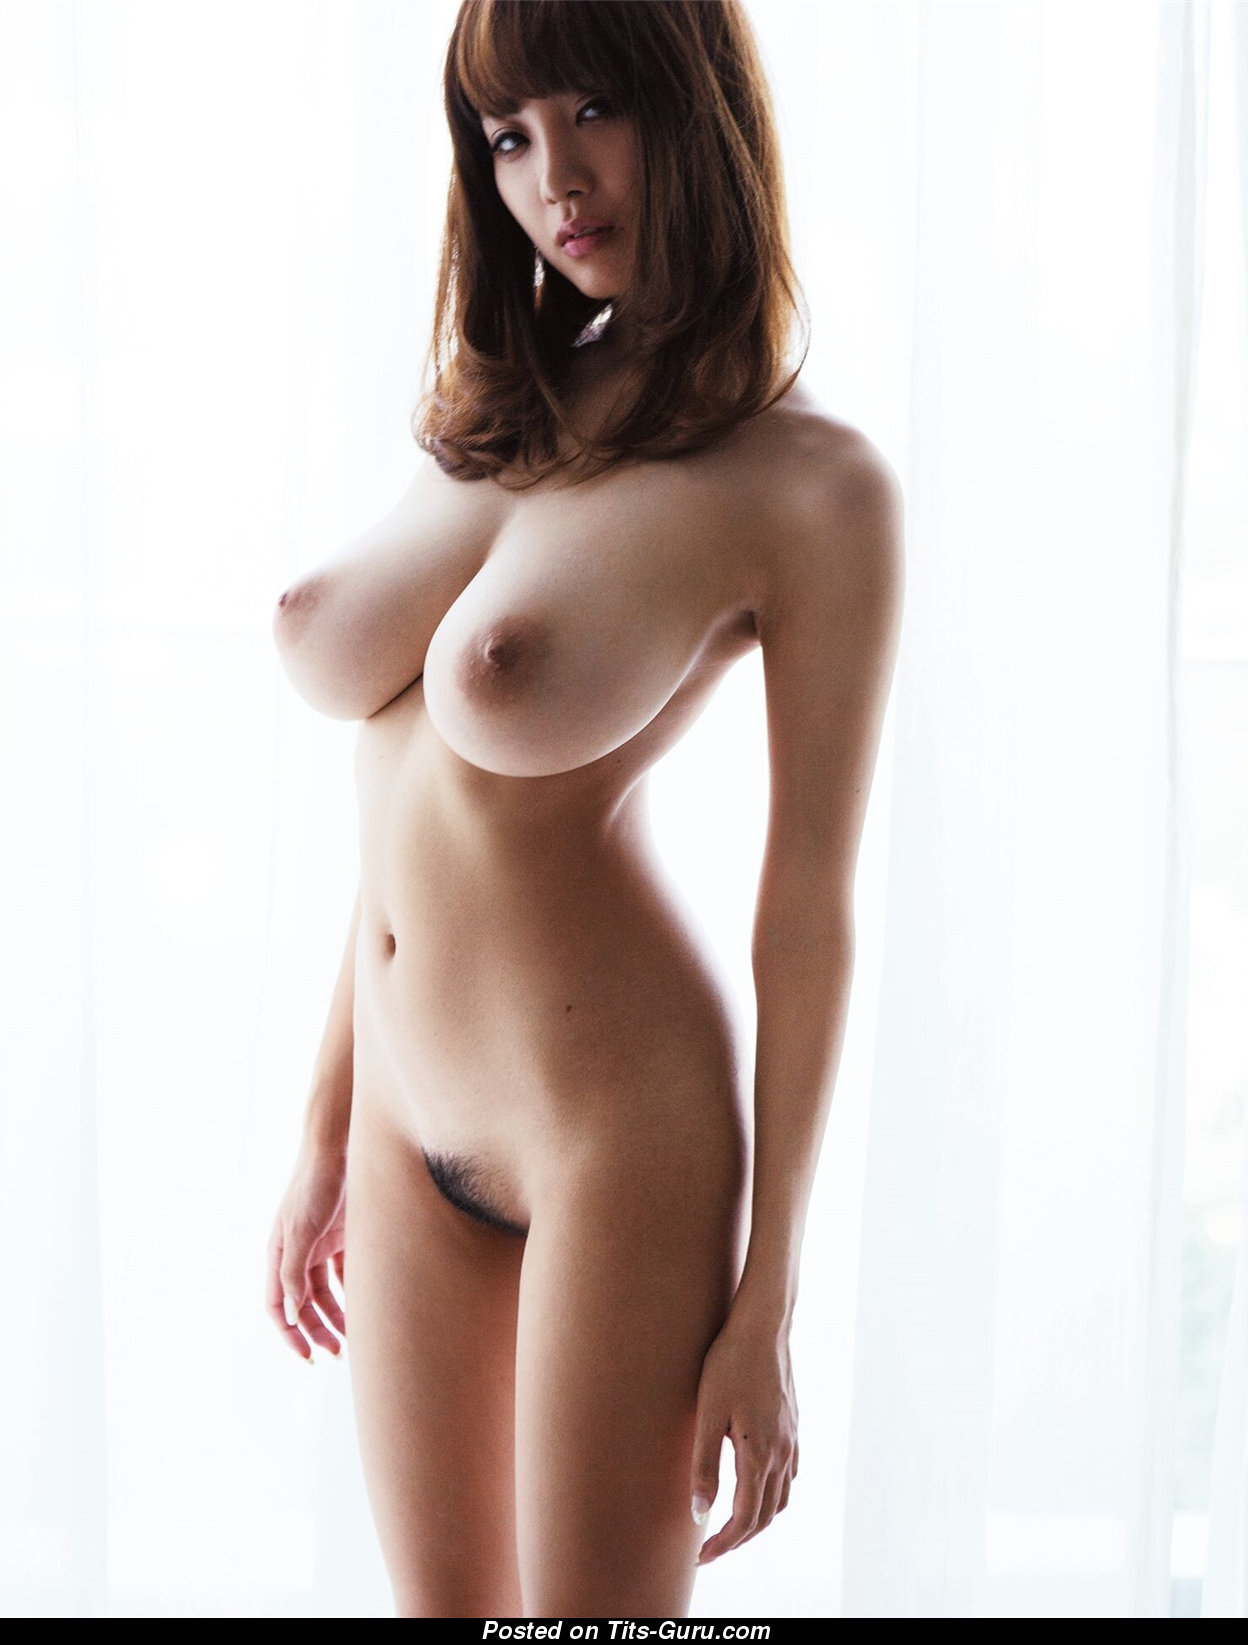 Asian in the nude